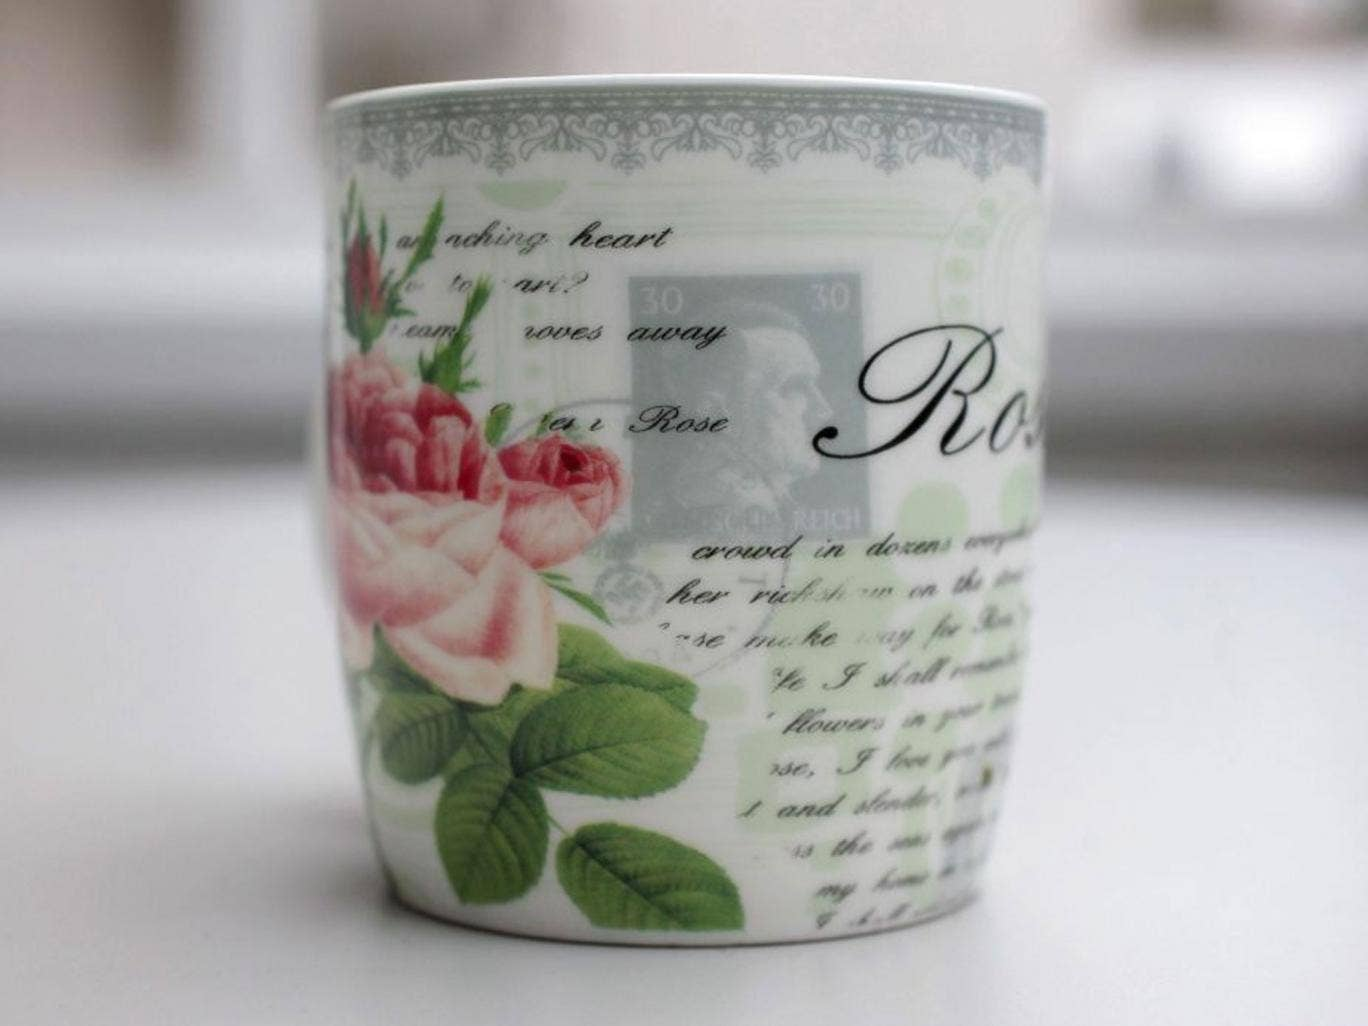 175 mugs were sold before the mistake was identified